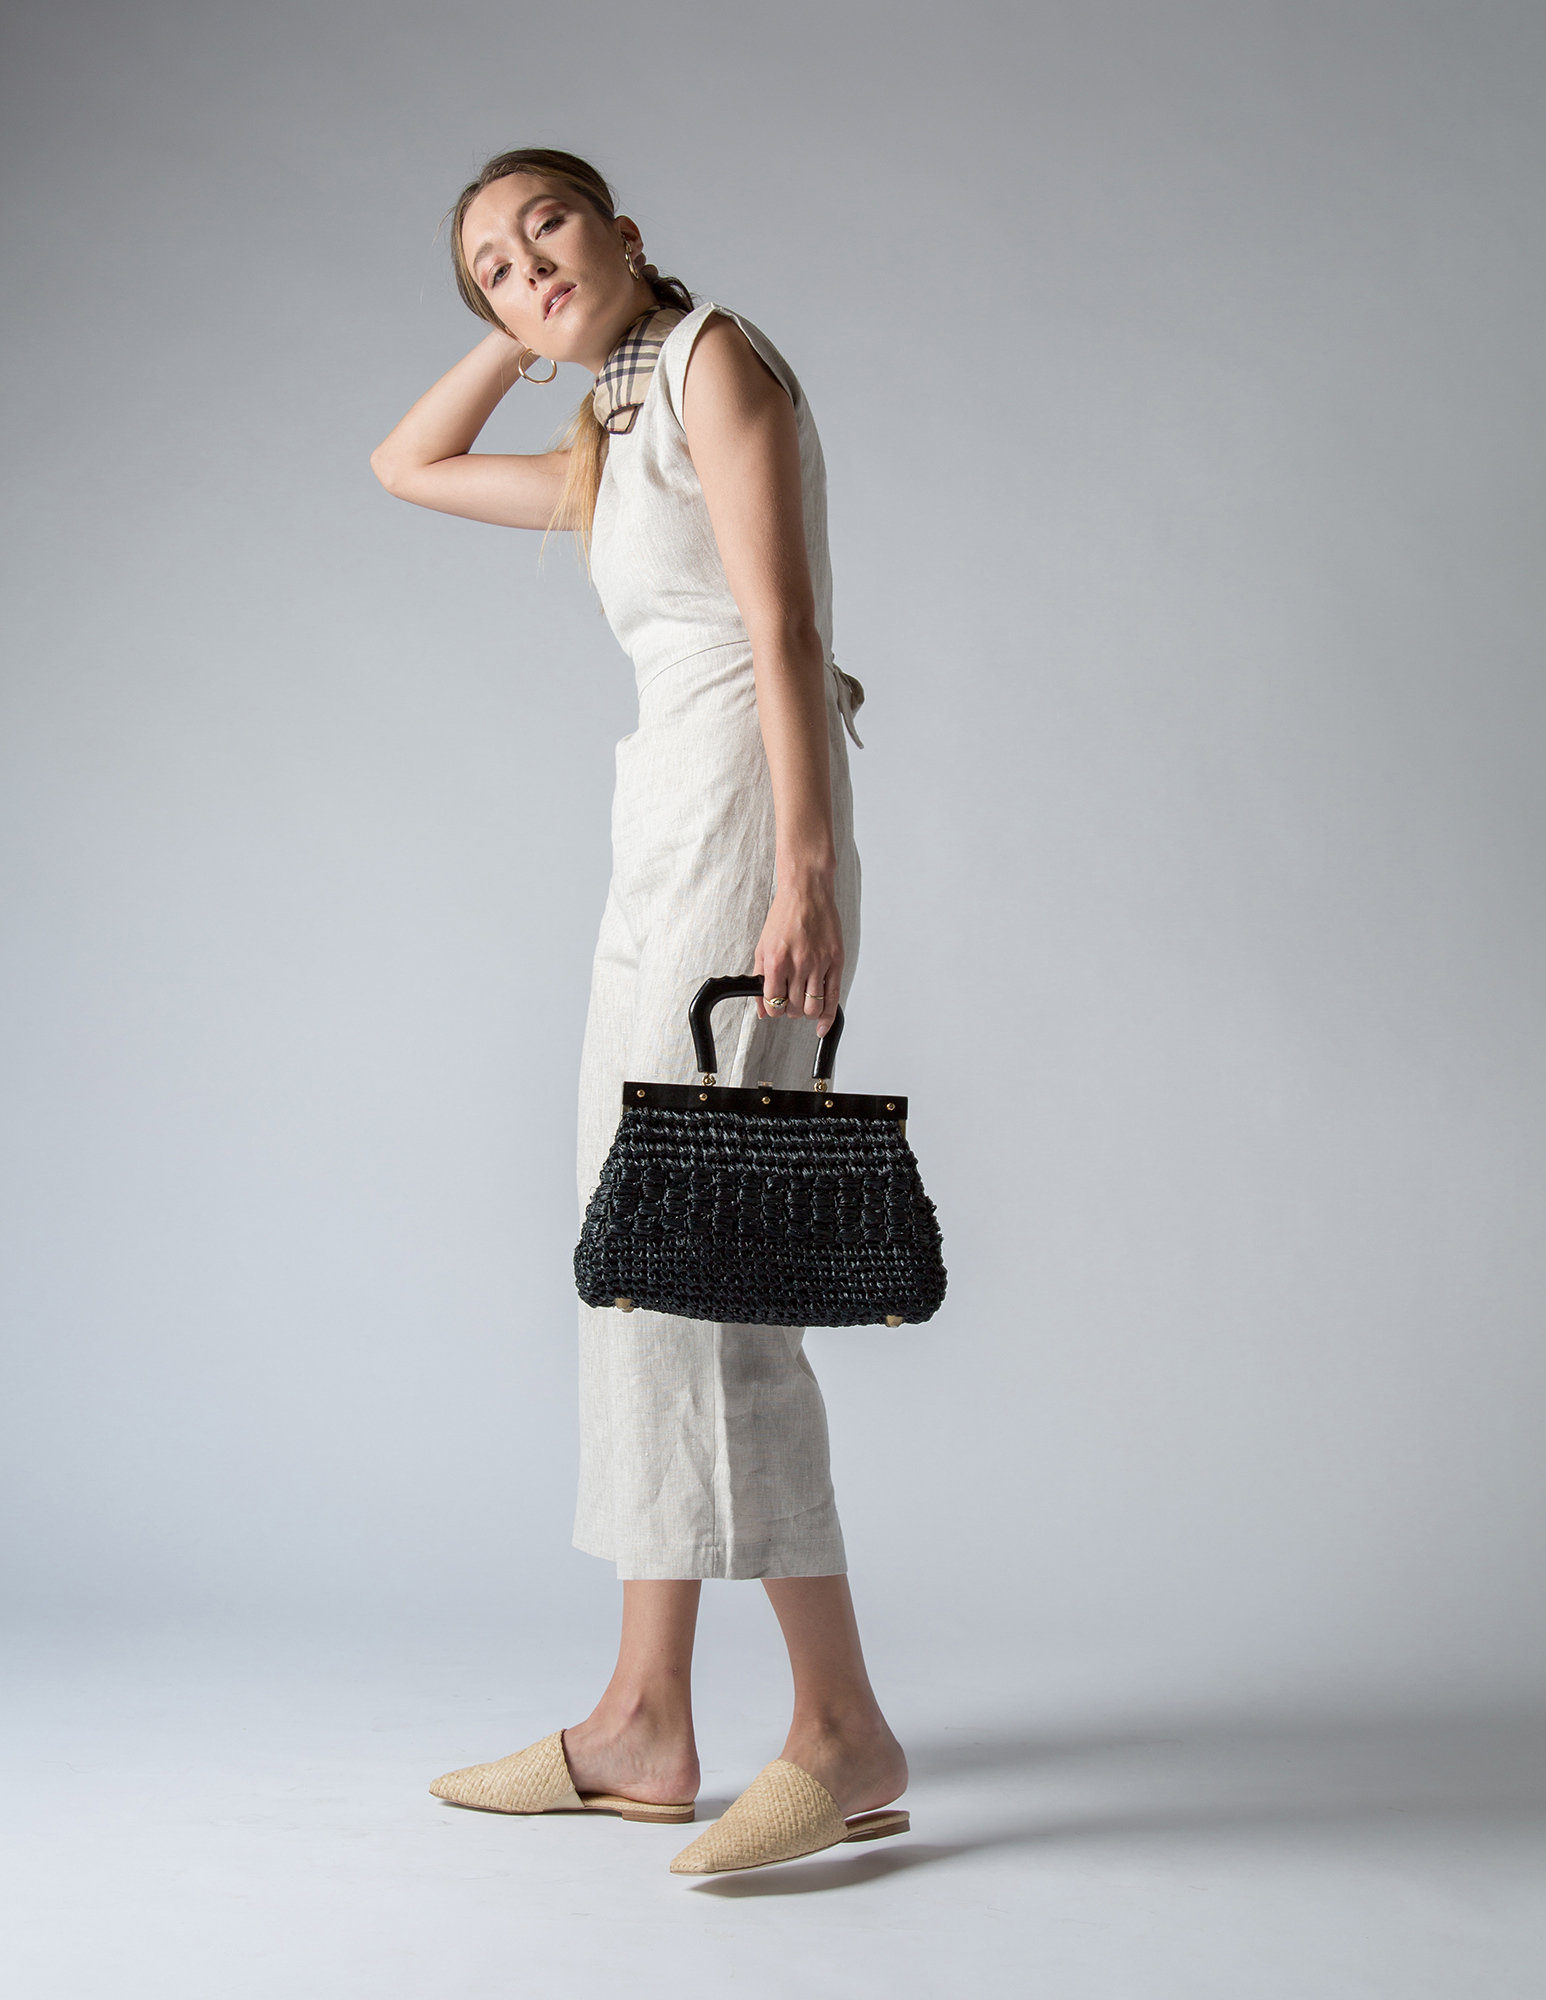 Only Child jumpsuit, Jeffrey Cambell shoes, vintage bag, Burberry scarf, Argento Vivo earrings